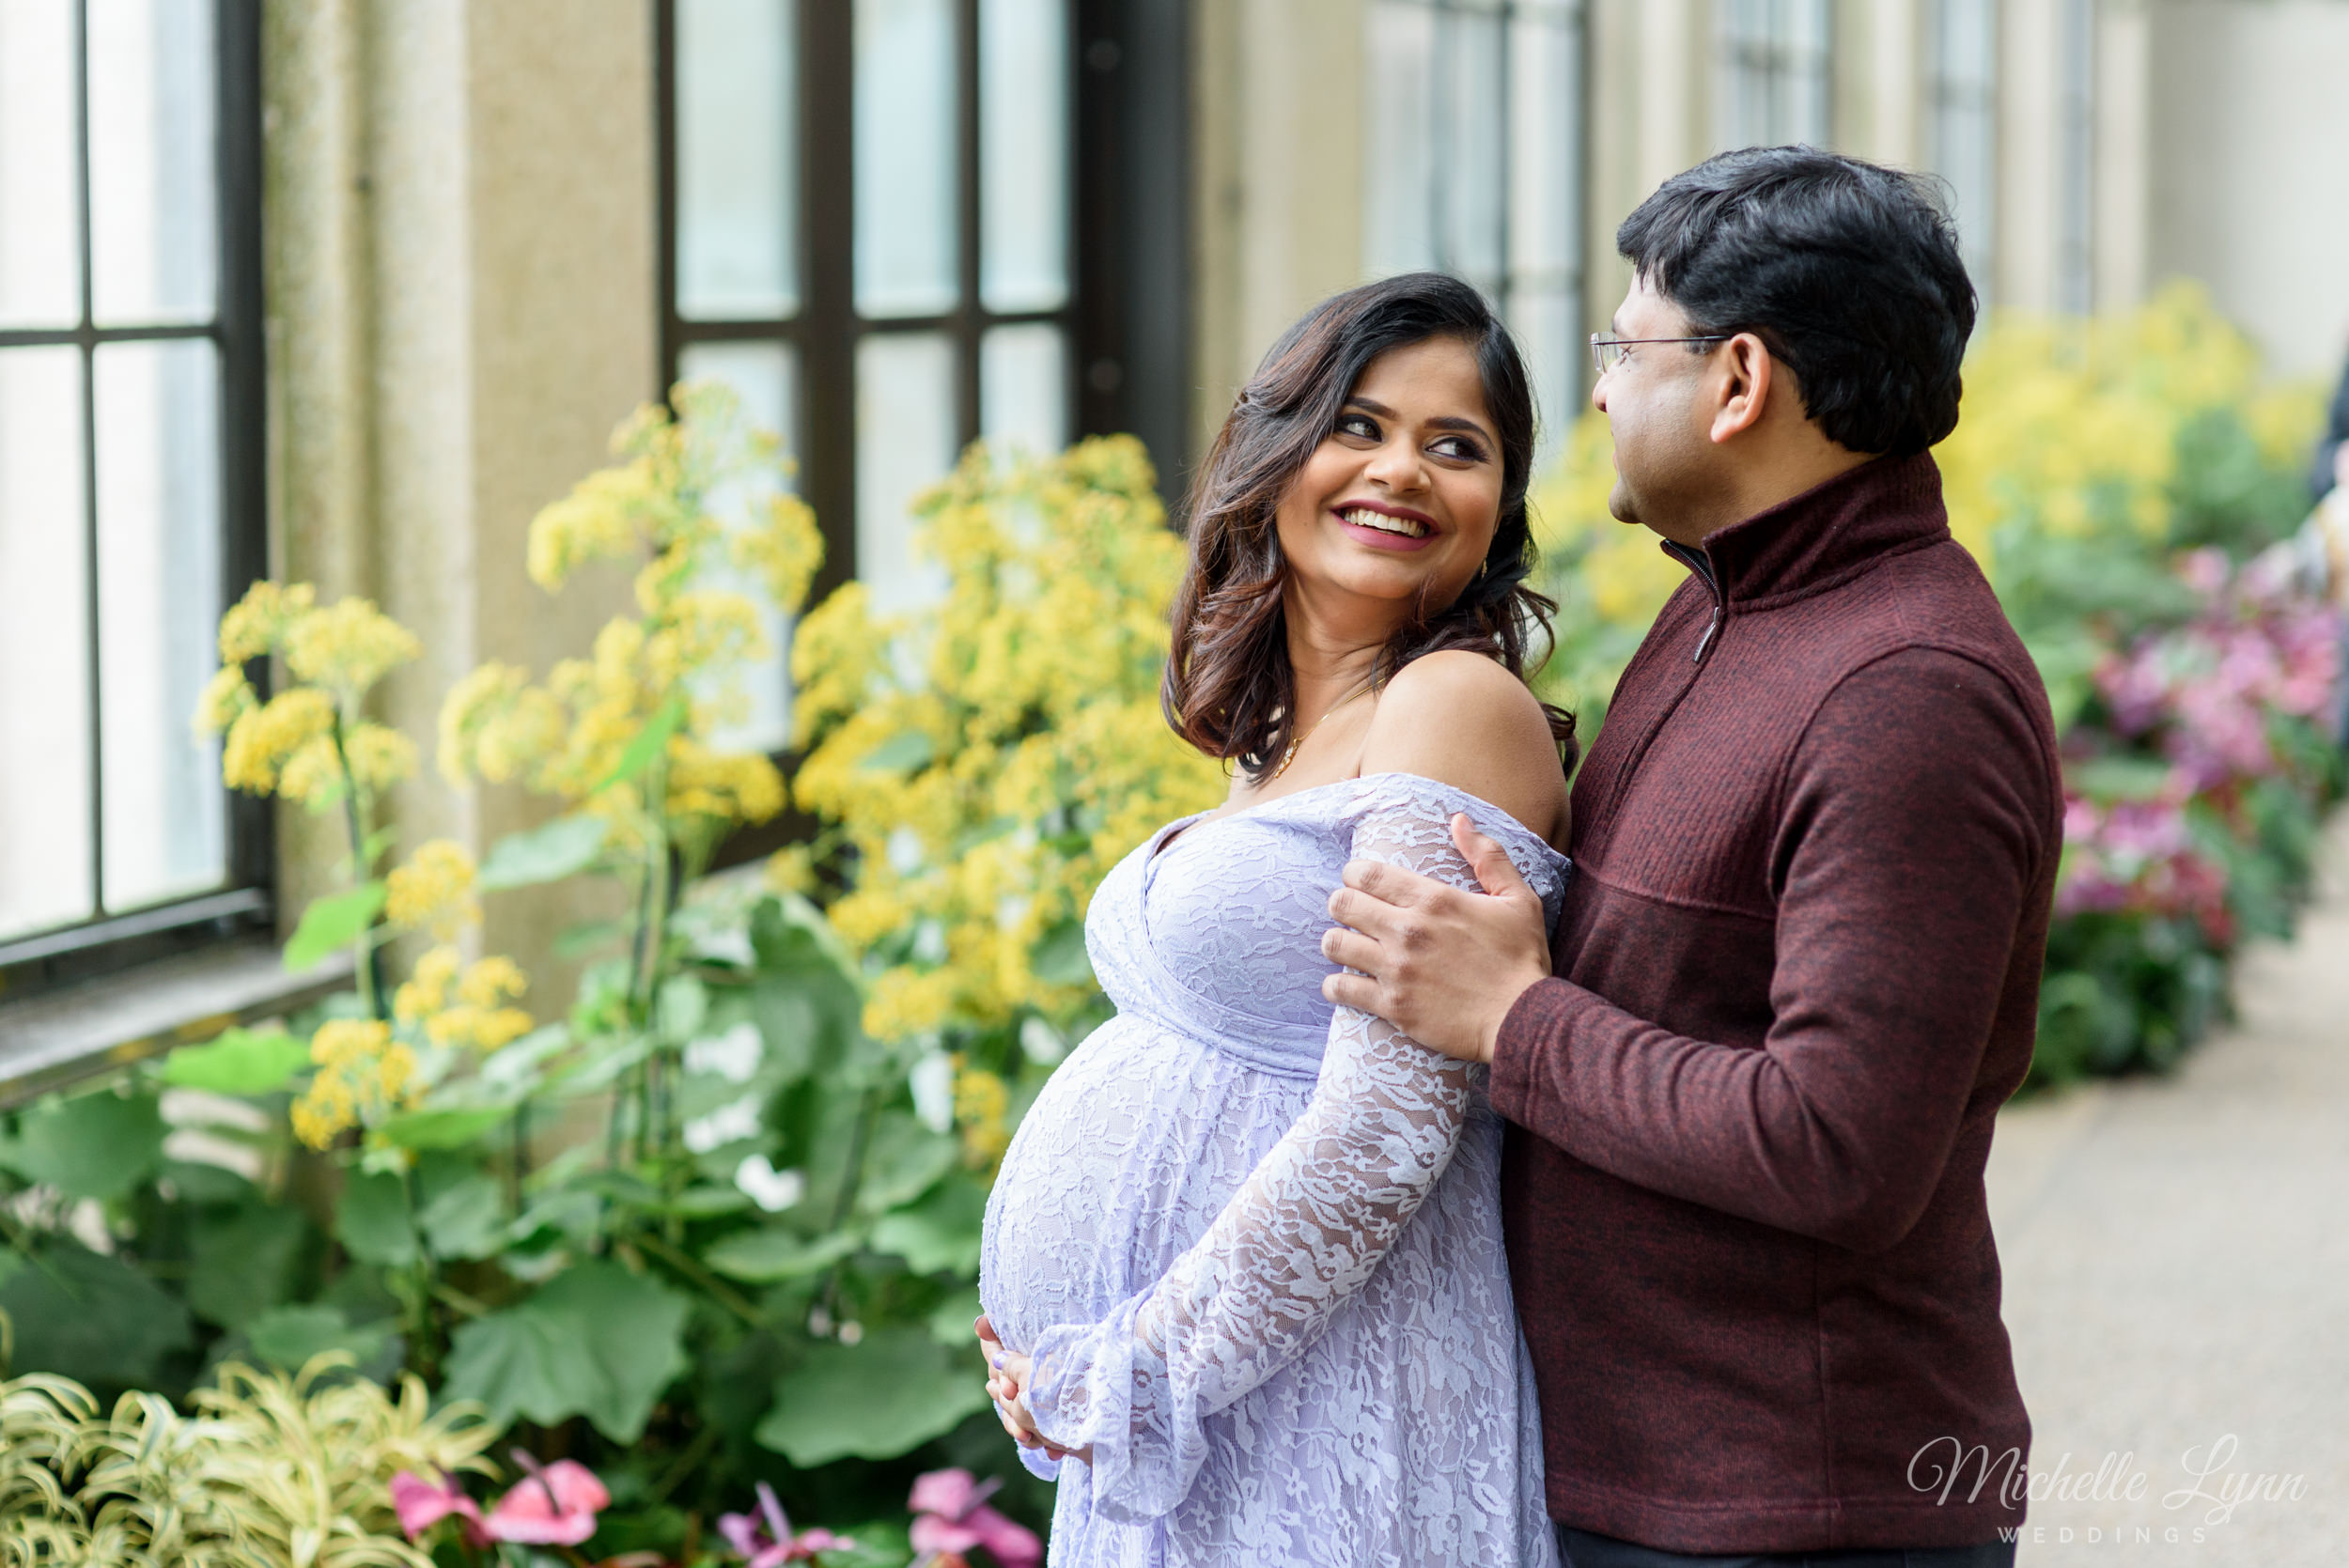 mlw-longwood-gardens-maternity-photos-23.jpg